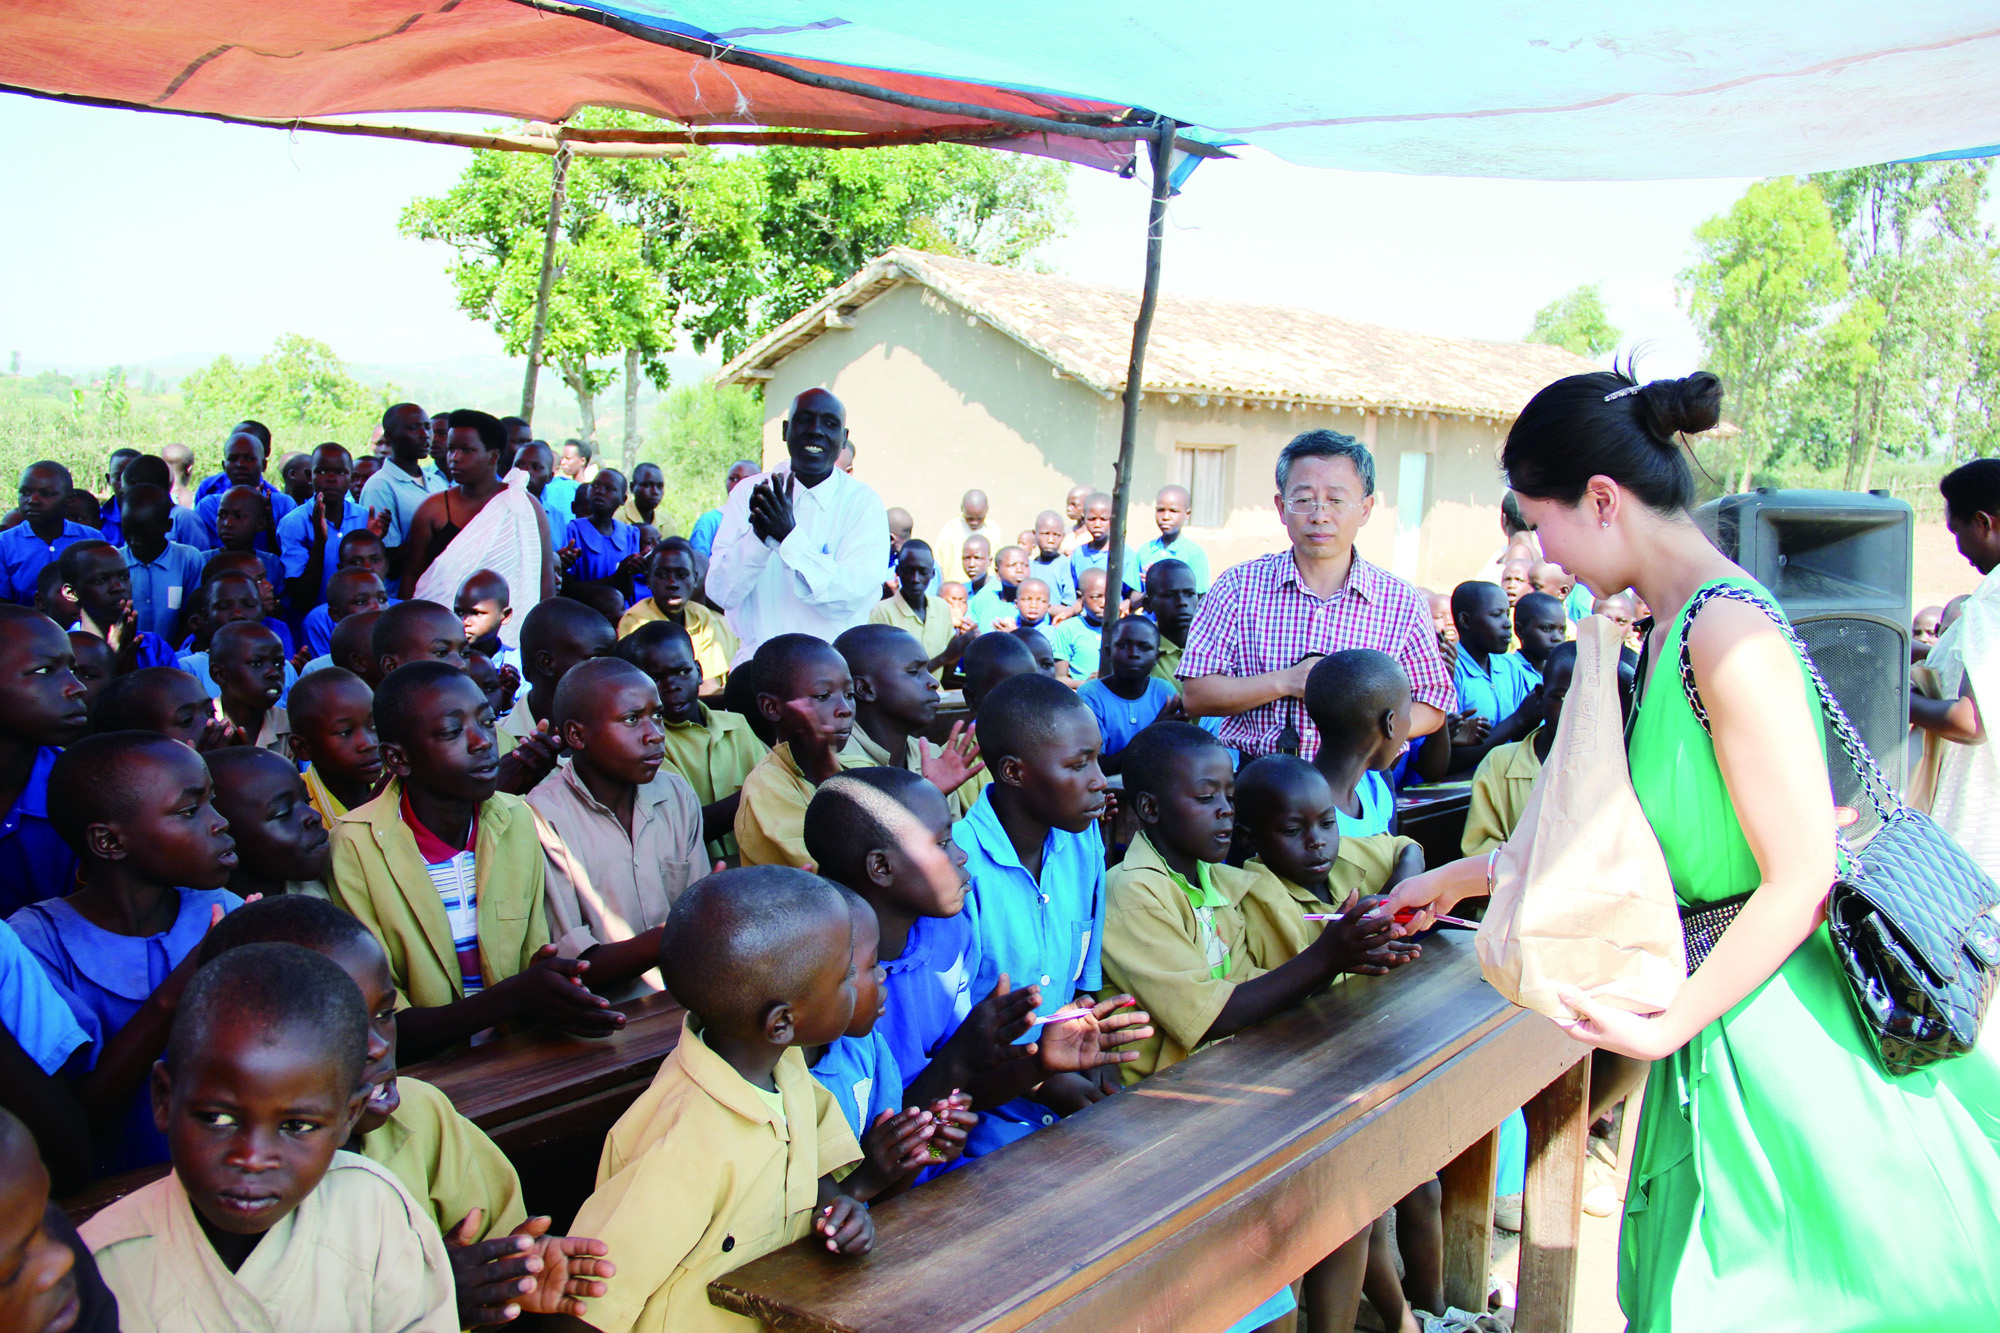 Ms. Xingyu Lu donating learning equipment to children in Africa